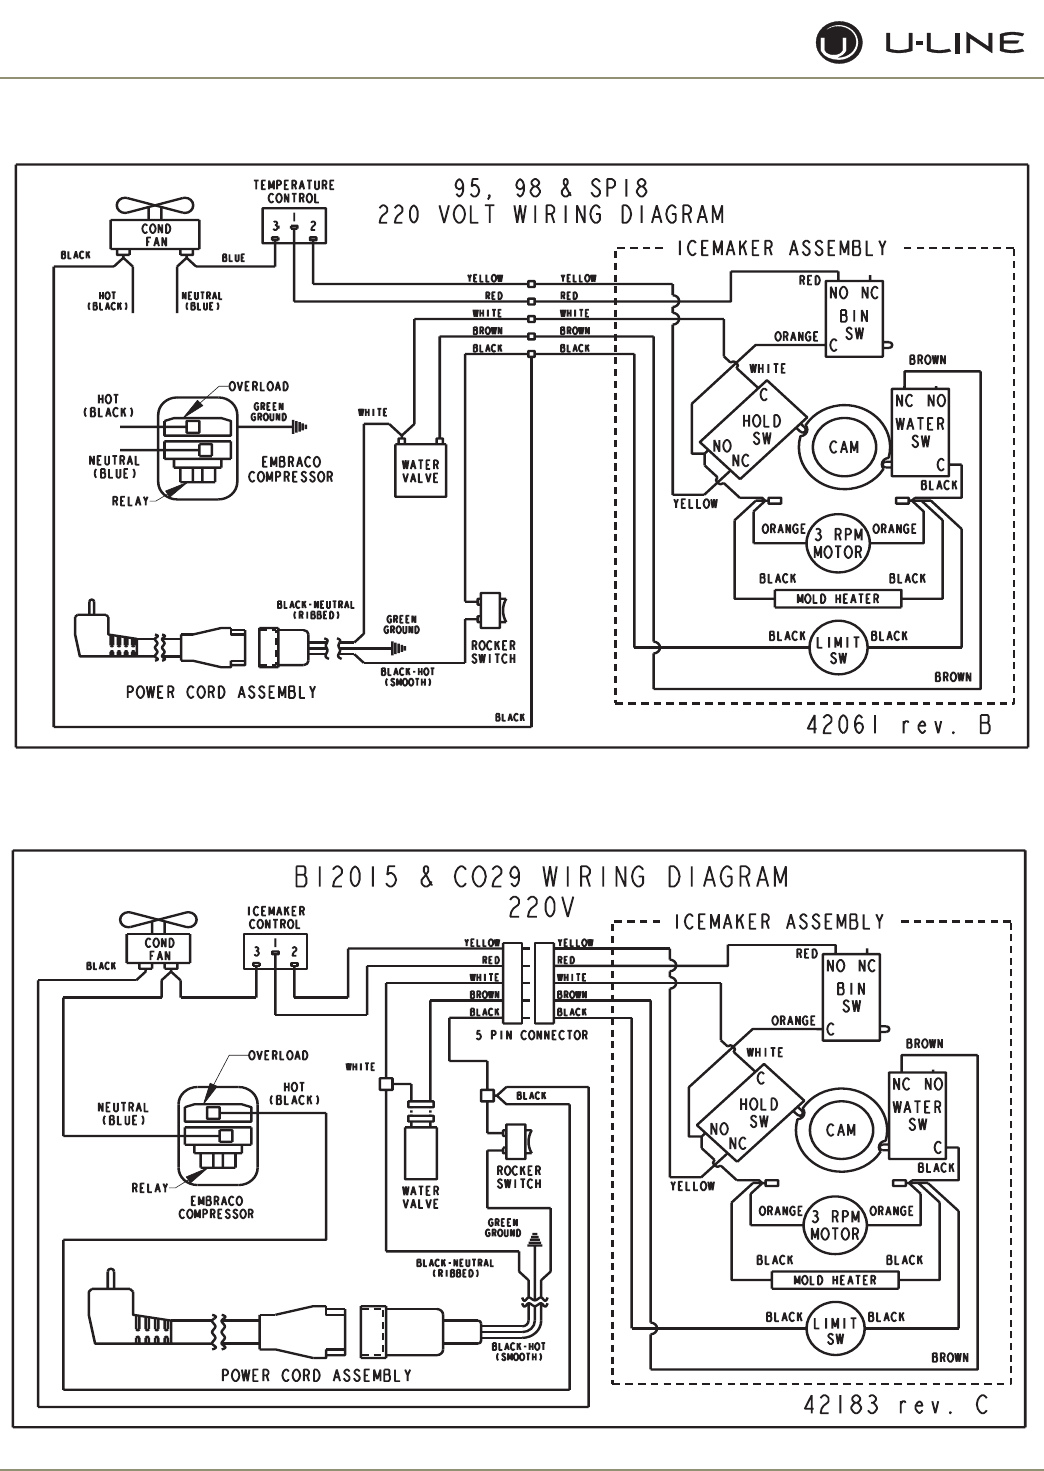 7502df08 1fff 4576 9ce4 e53bc1eea1d4 bg41?resize\=665%2C937 diagrams 600798 kenmore ice maker wiring harness setup modual kenmore ice maker wiring harness at gsmx.co